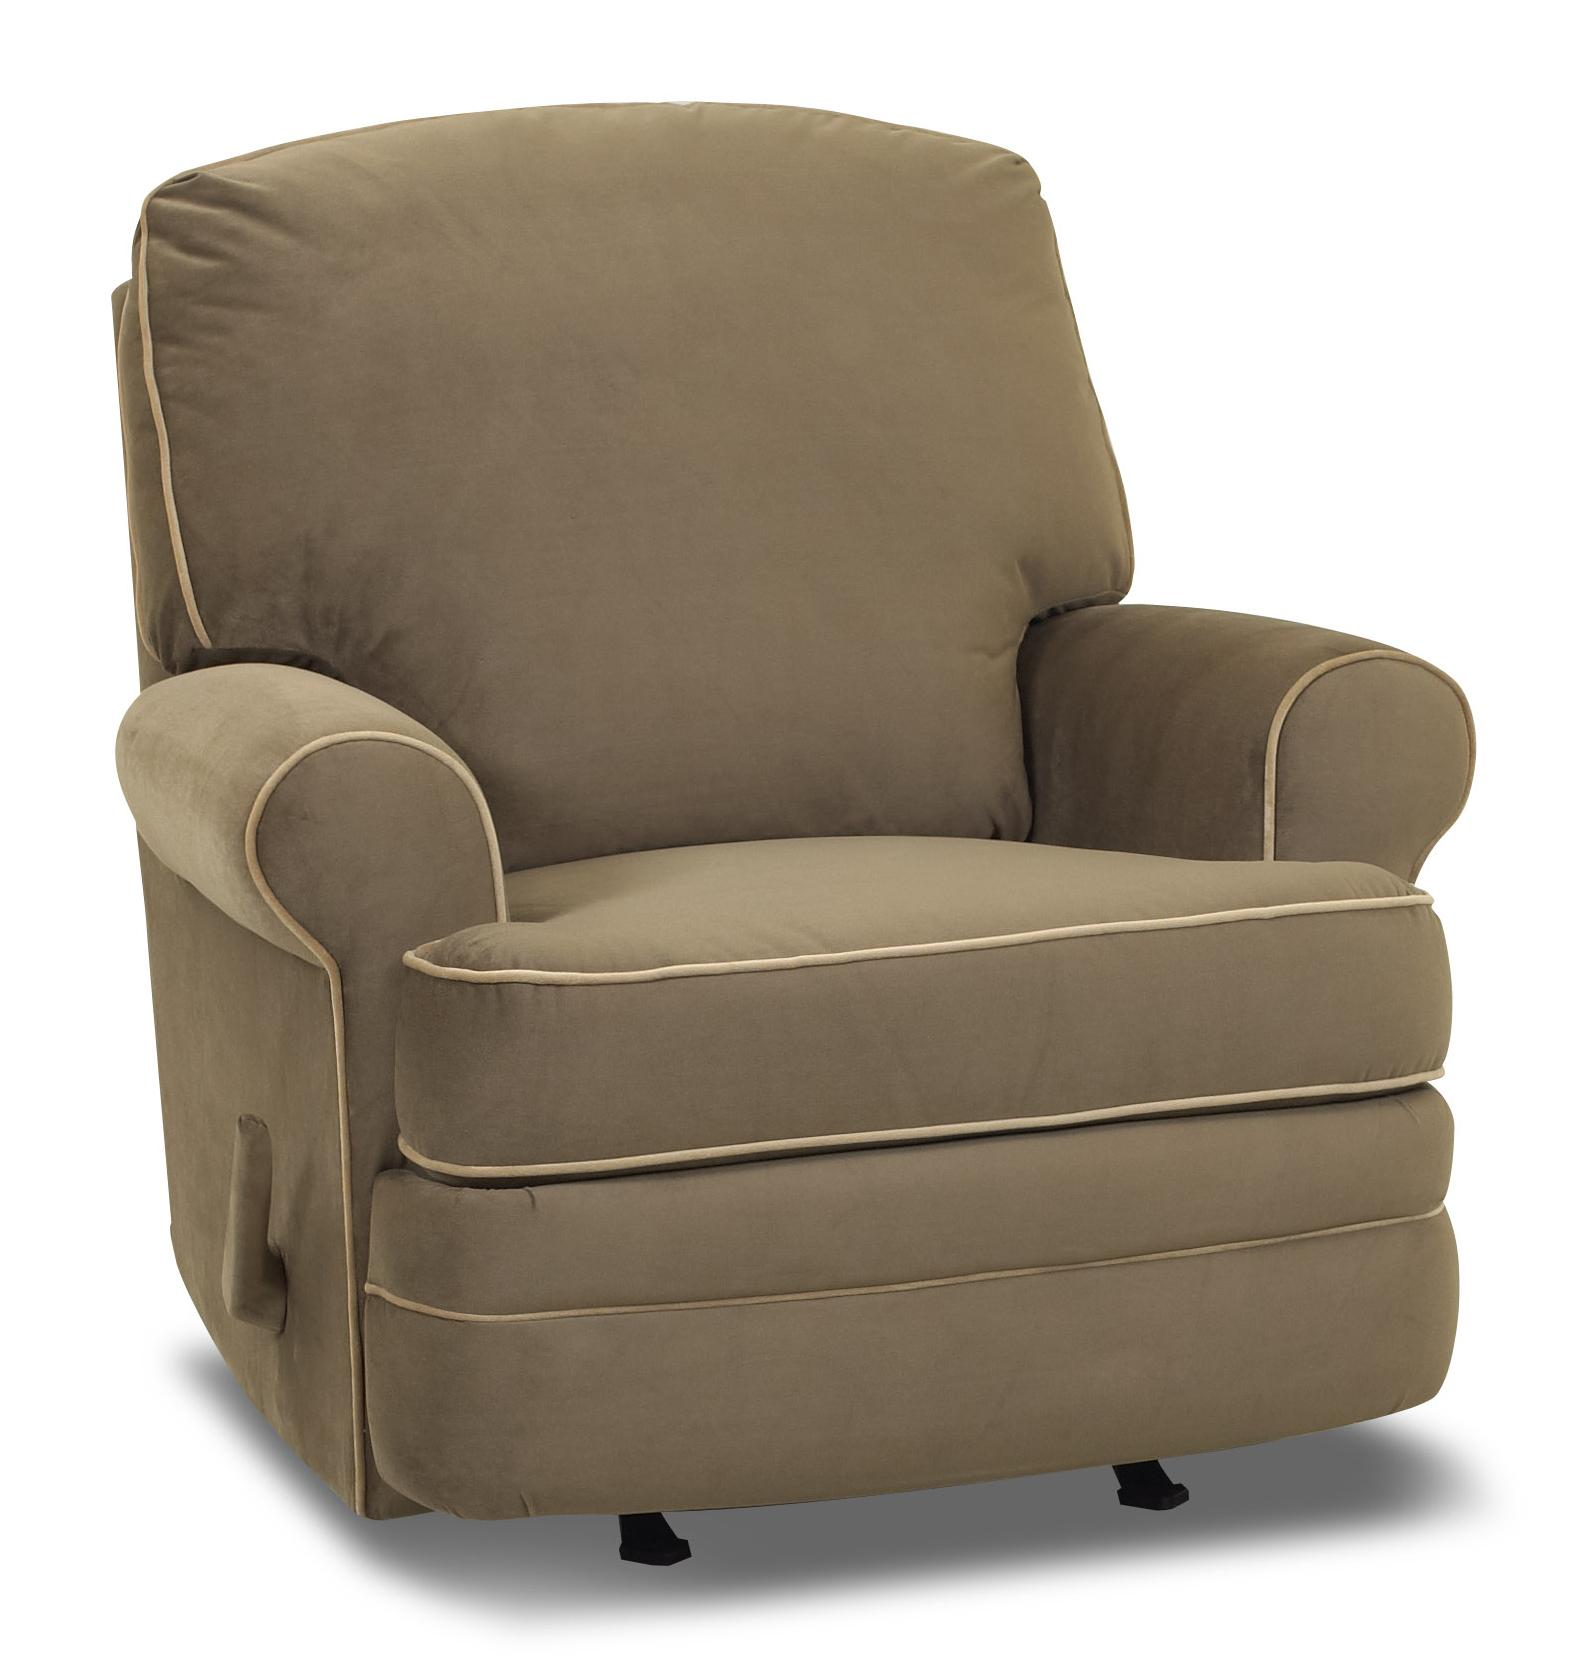 Belleview Reclining Chair by Klaussner at Johnny Janosik